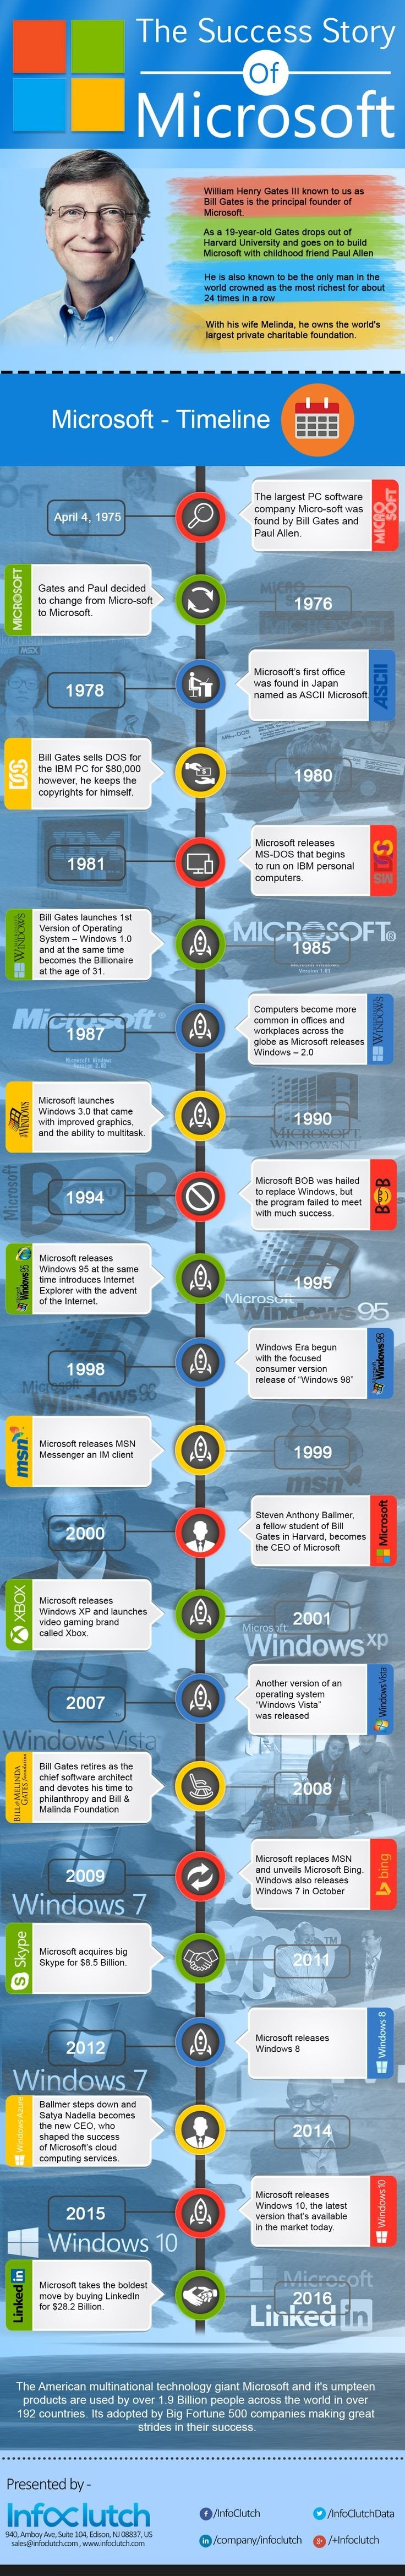 The success story of #Microsoft #Infographic